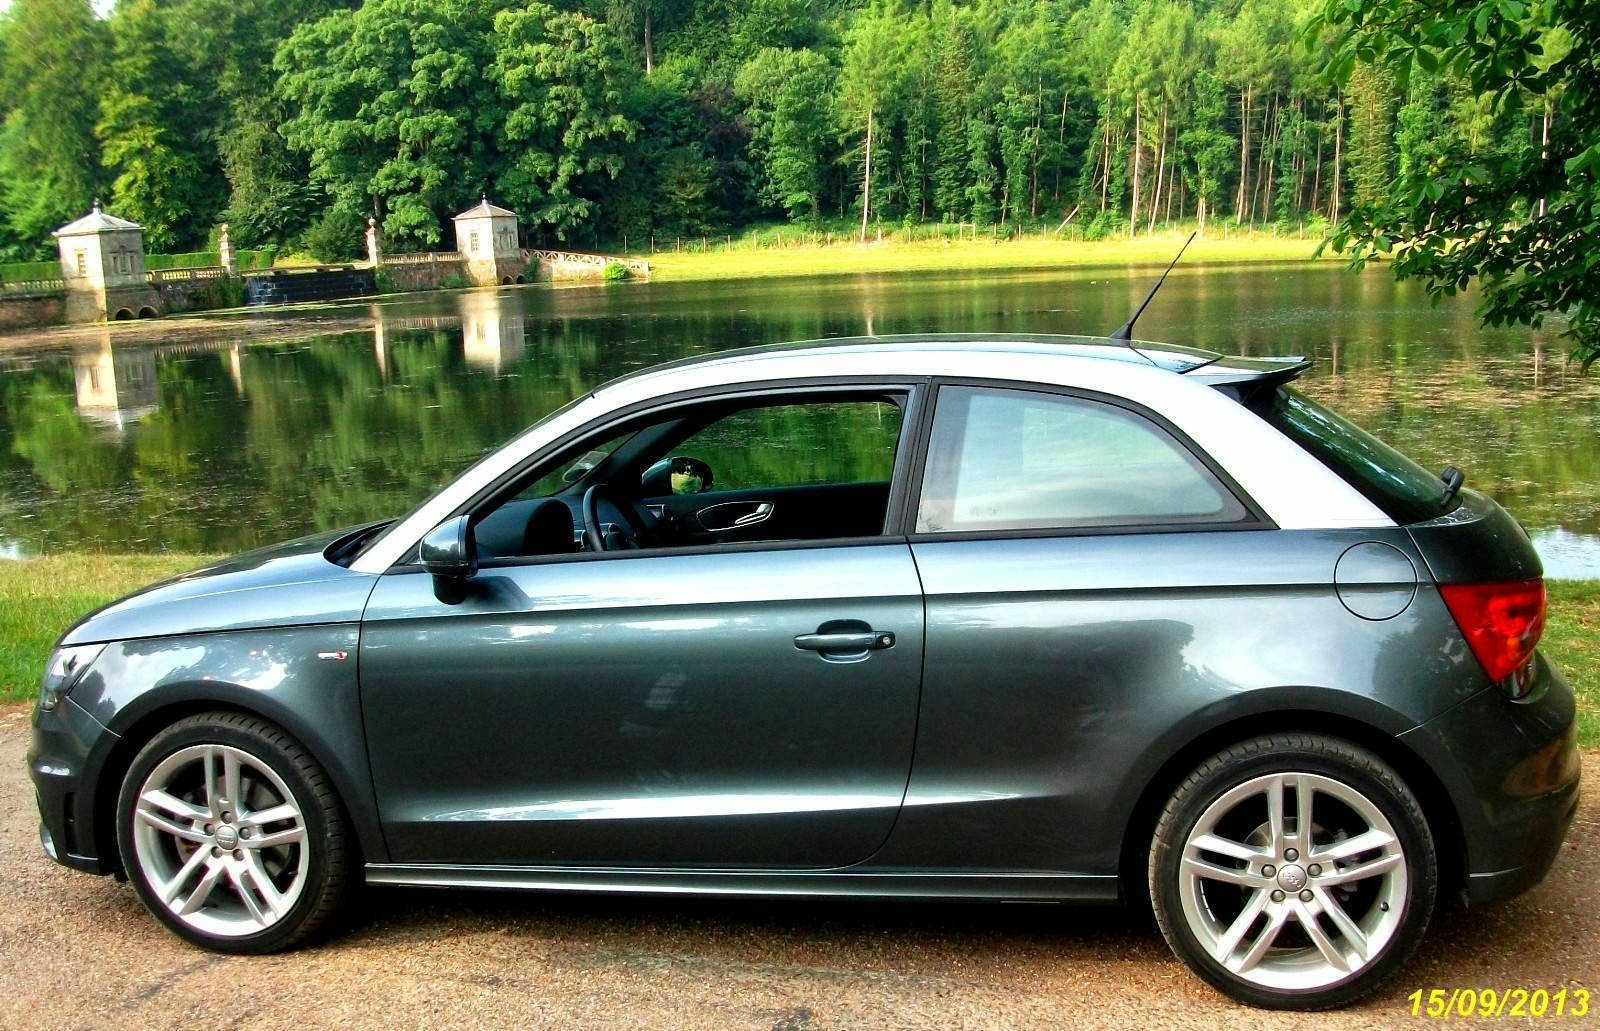 jack buster jack scam 7 mon 23 sep 2013 audi a1 s line tfsi ebay 200967031140. Black Bedroom Furniture Sets. Home Design Ideas